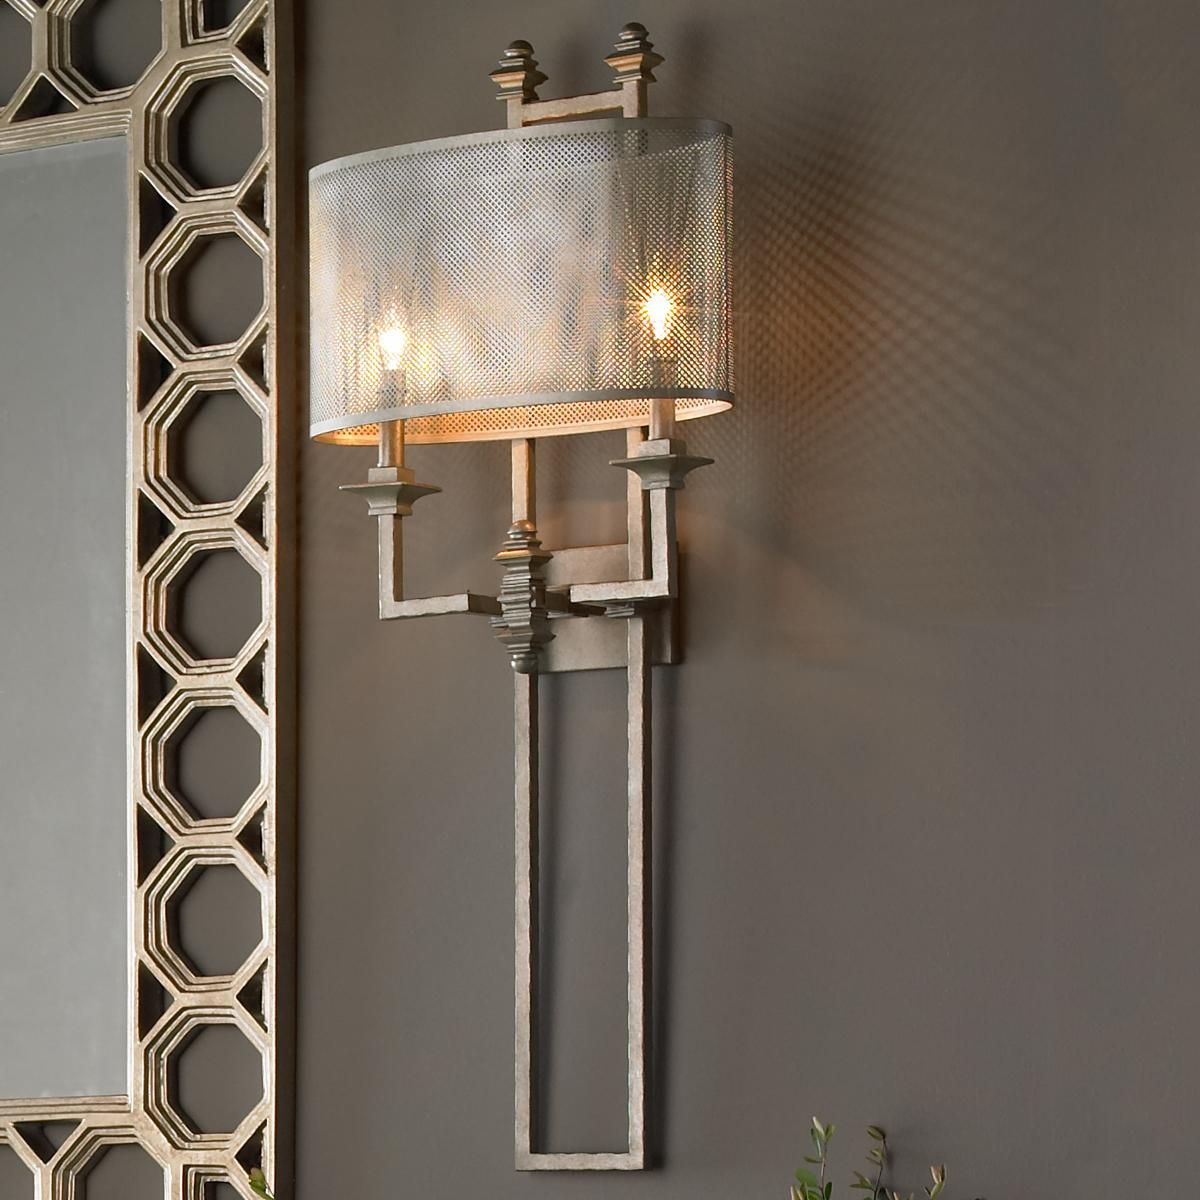 Mesh Screen Metal Sconce Wall Light Shades Vintage Wall Sconces Sconces